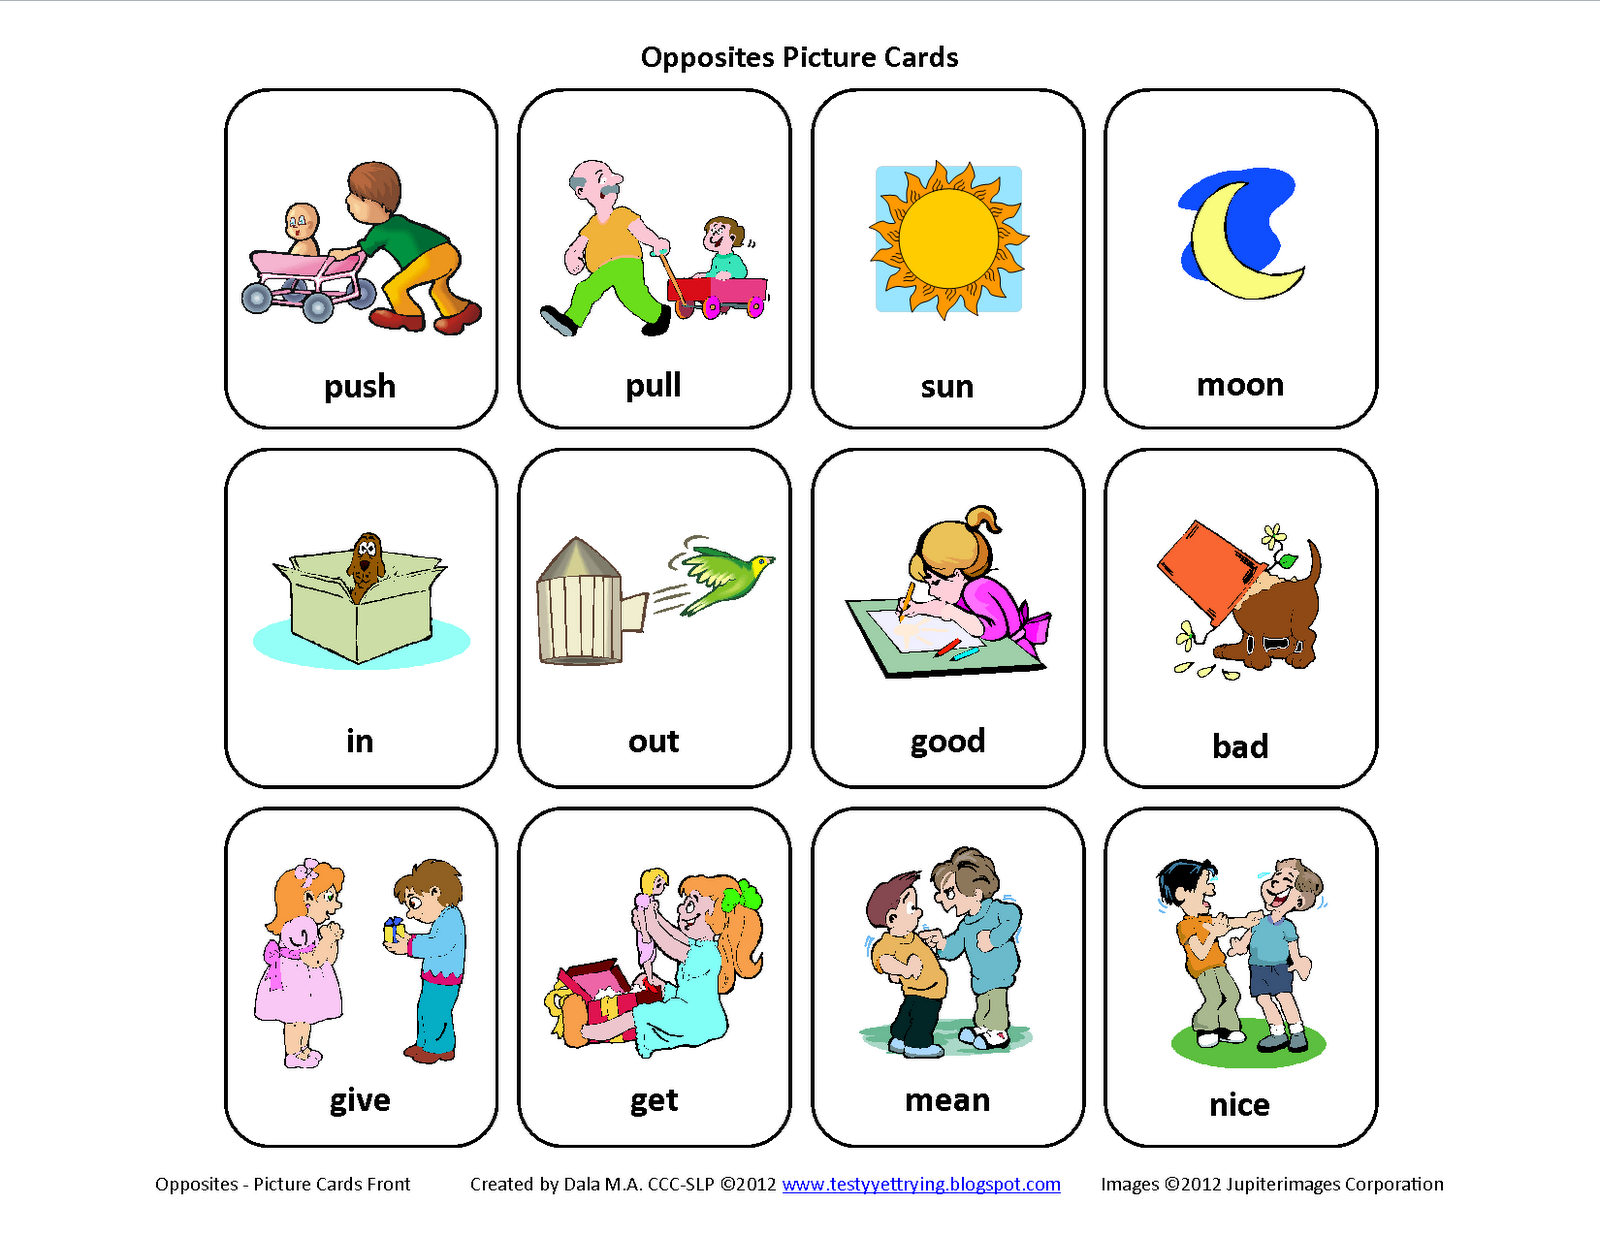 Testy yet trying: Free Mini-Set of Opposites Picture Cards